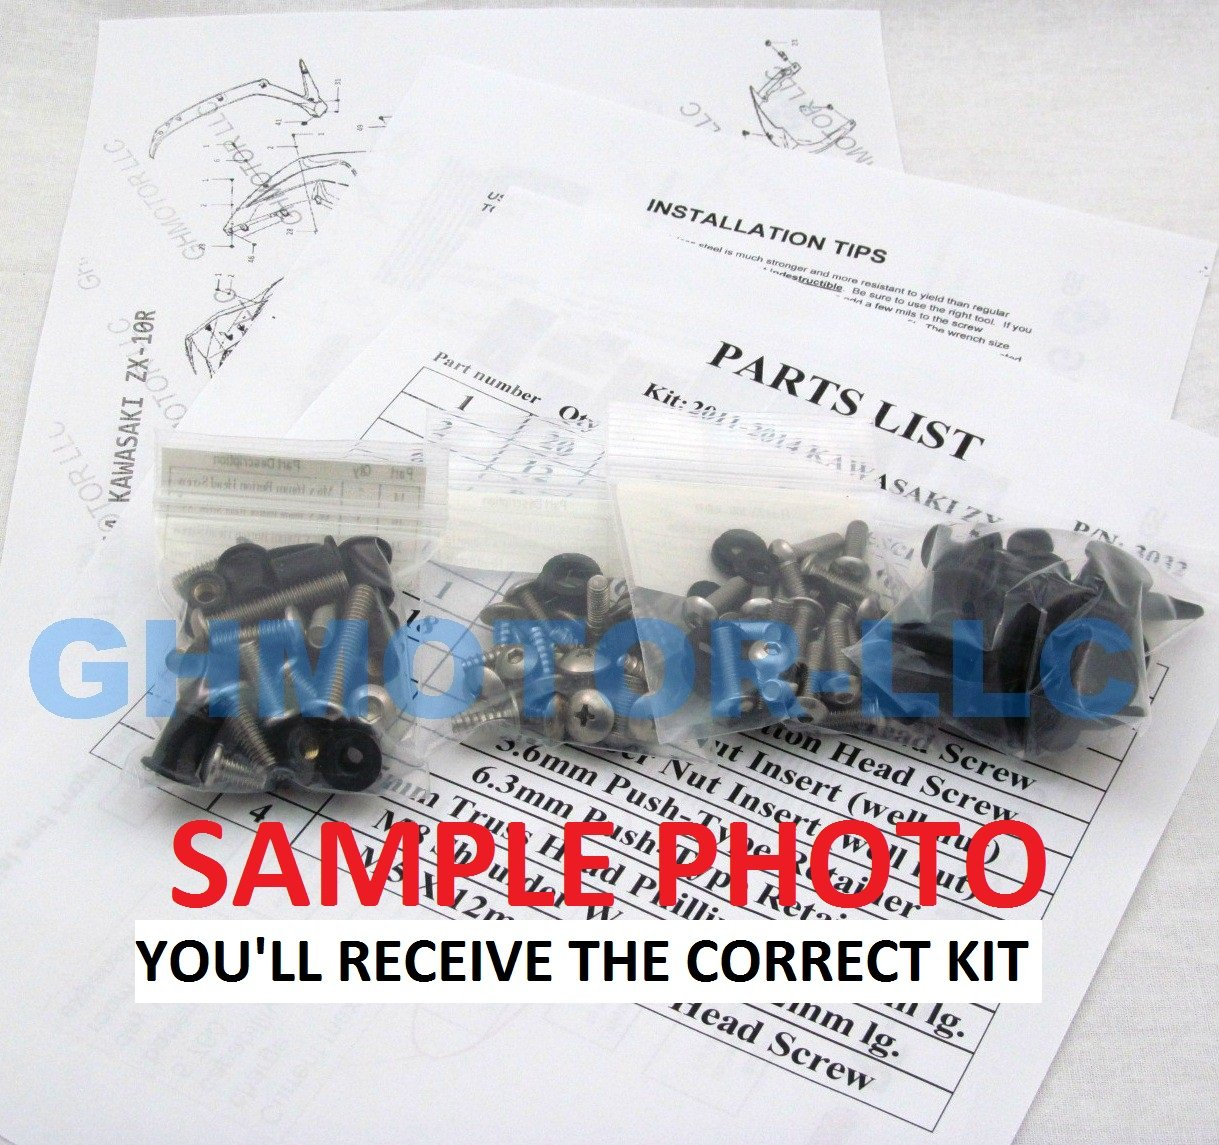 GHMotor Fairings Bolts Screws Fasteners Kit Set Made in USA for 1995 1996 1997 KAWASAKI ZX6R ZX-6R Silver GHMotor-3012$-bk